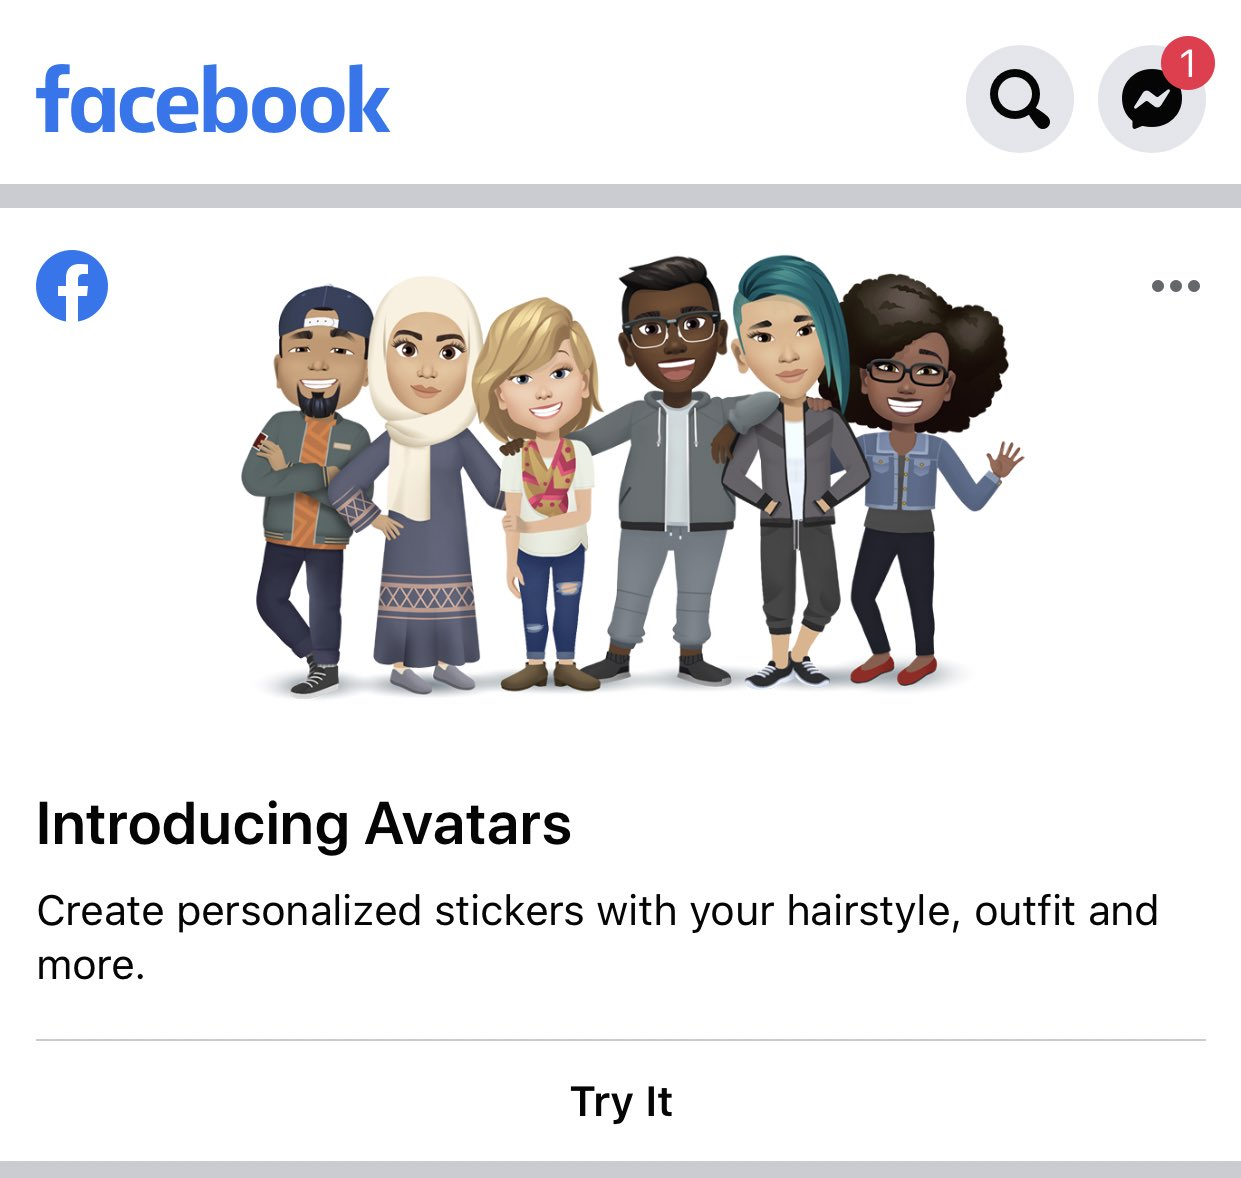 Facebook promoting its new avatars feature in news feed